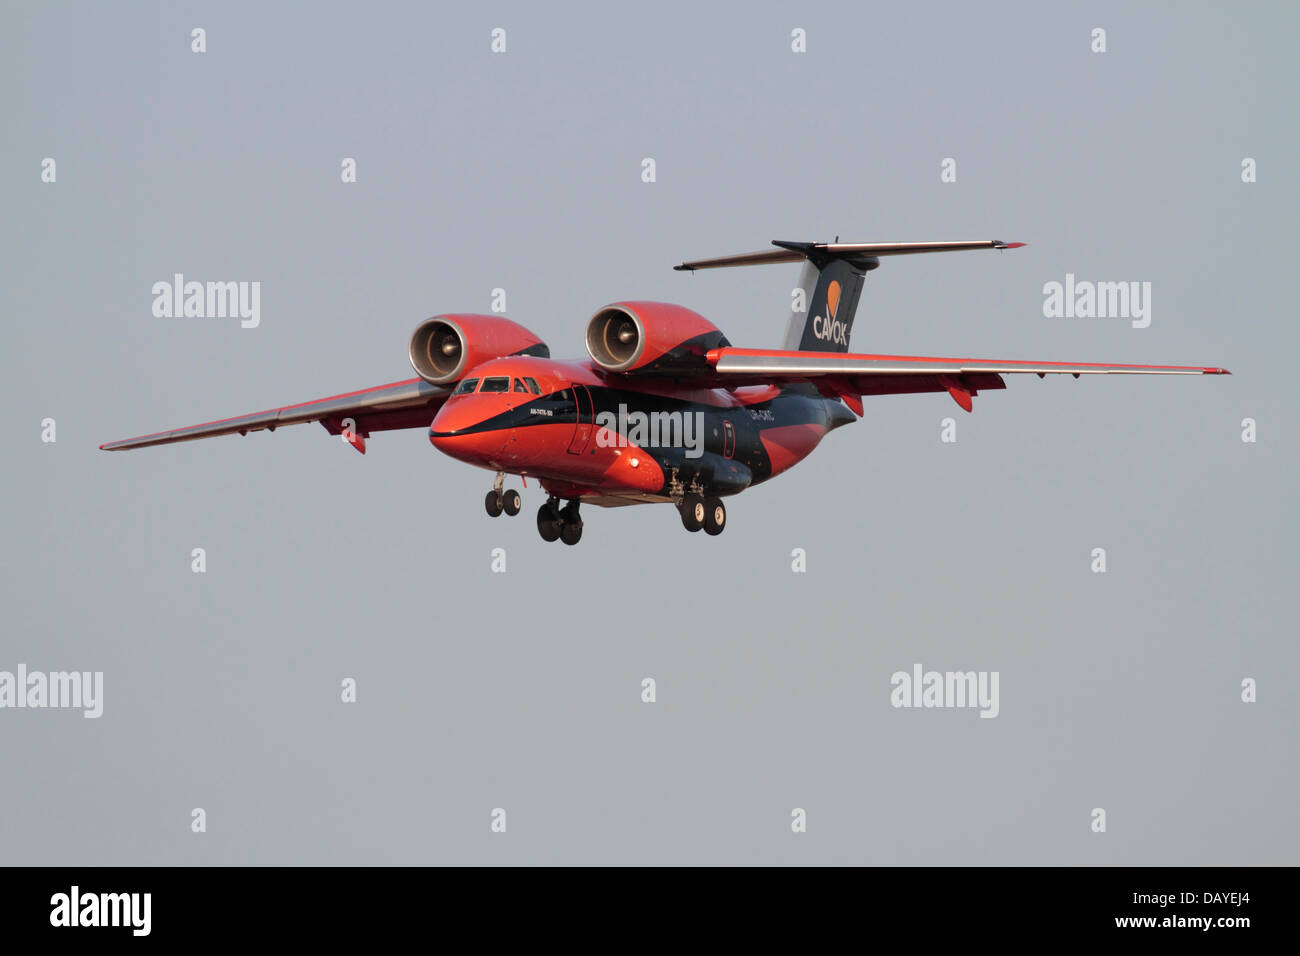 Air freight transport. Antonov An-74 cargo plane in the colours of Ukrainian operator Cavok Air, showing its unusual - Stock Image